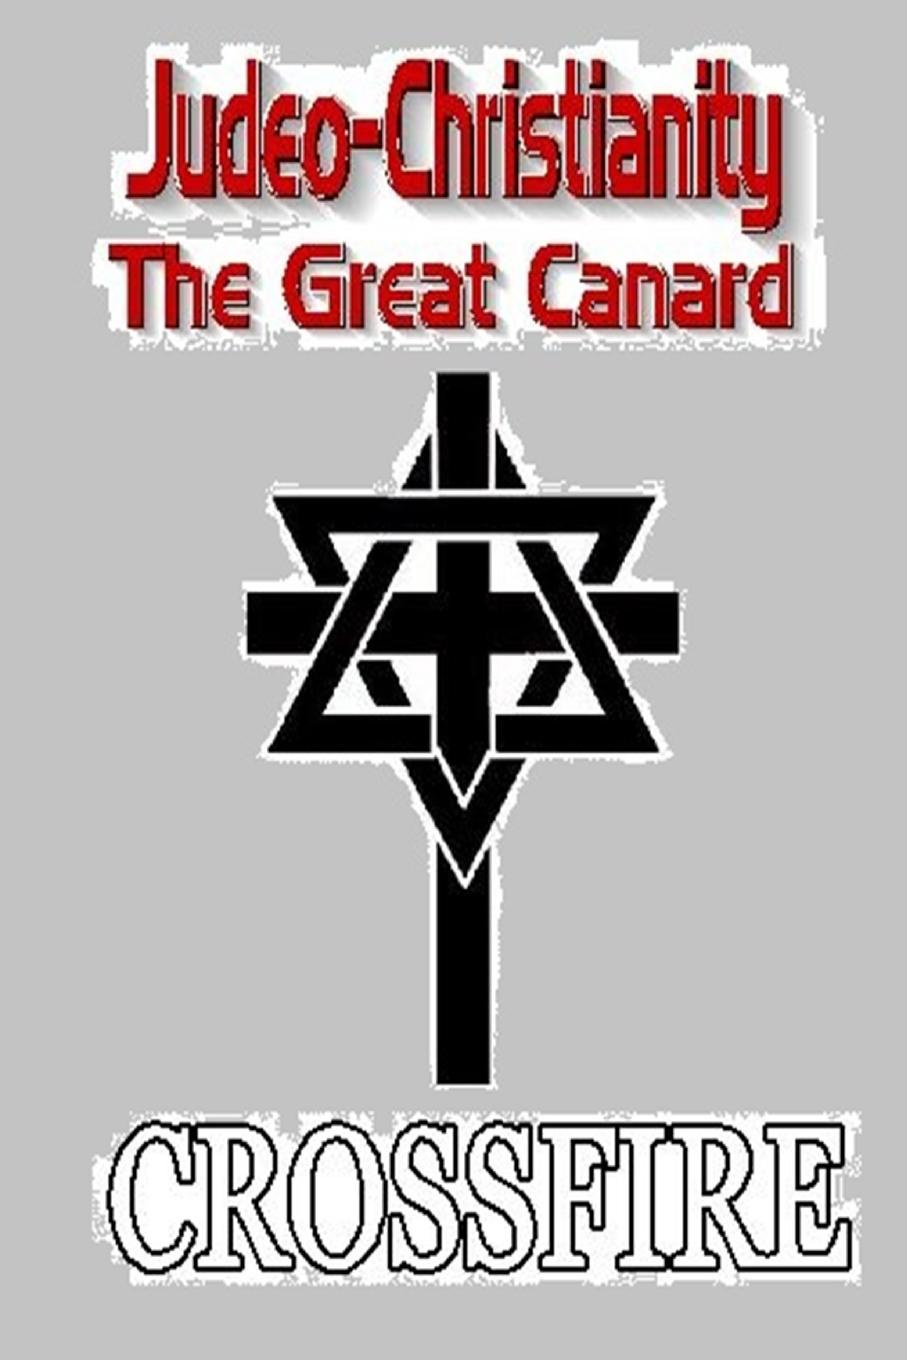 Crossfire Judeo-Christianity, The Great Canard crossfire publications why